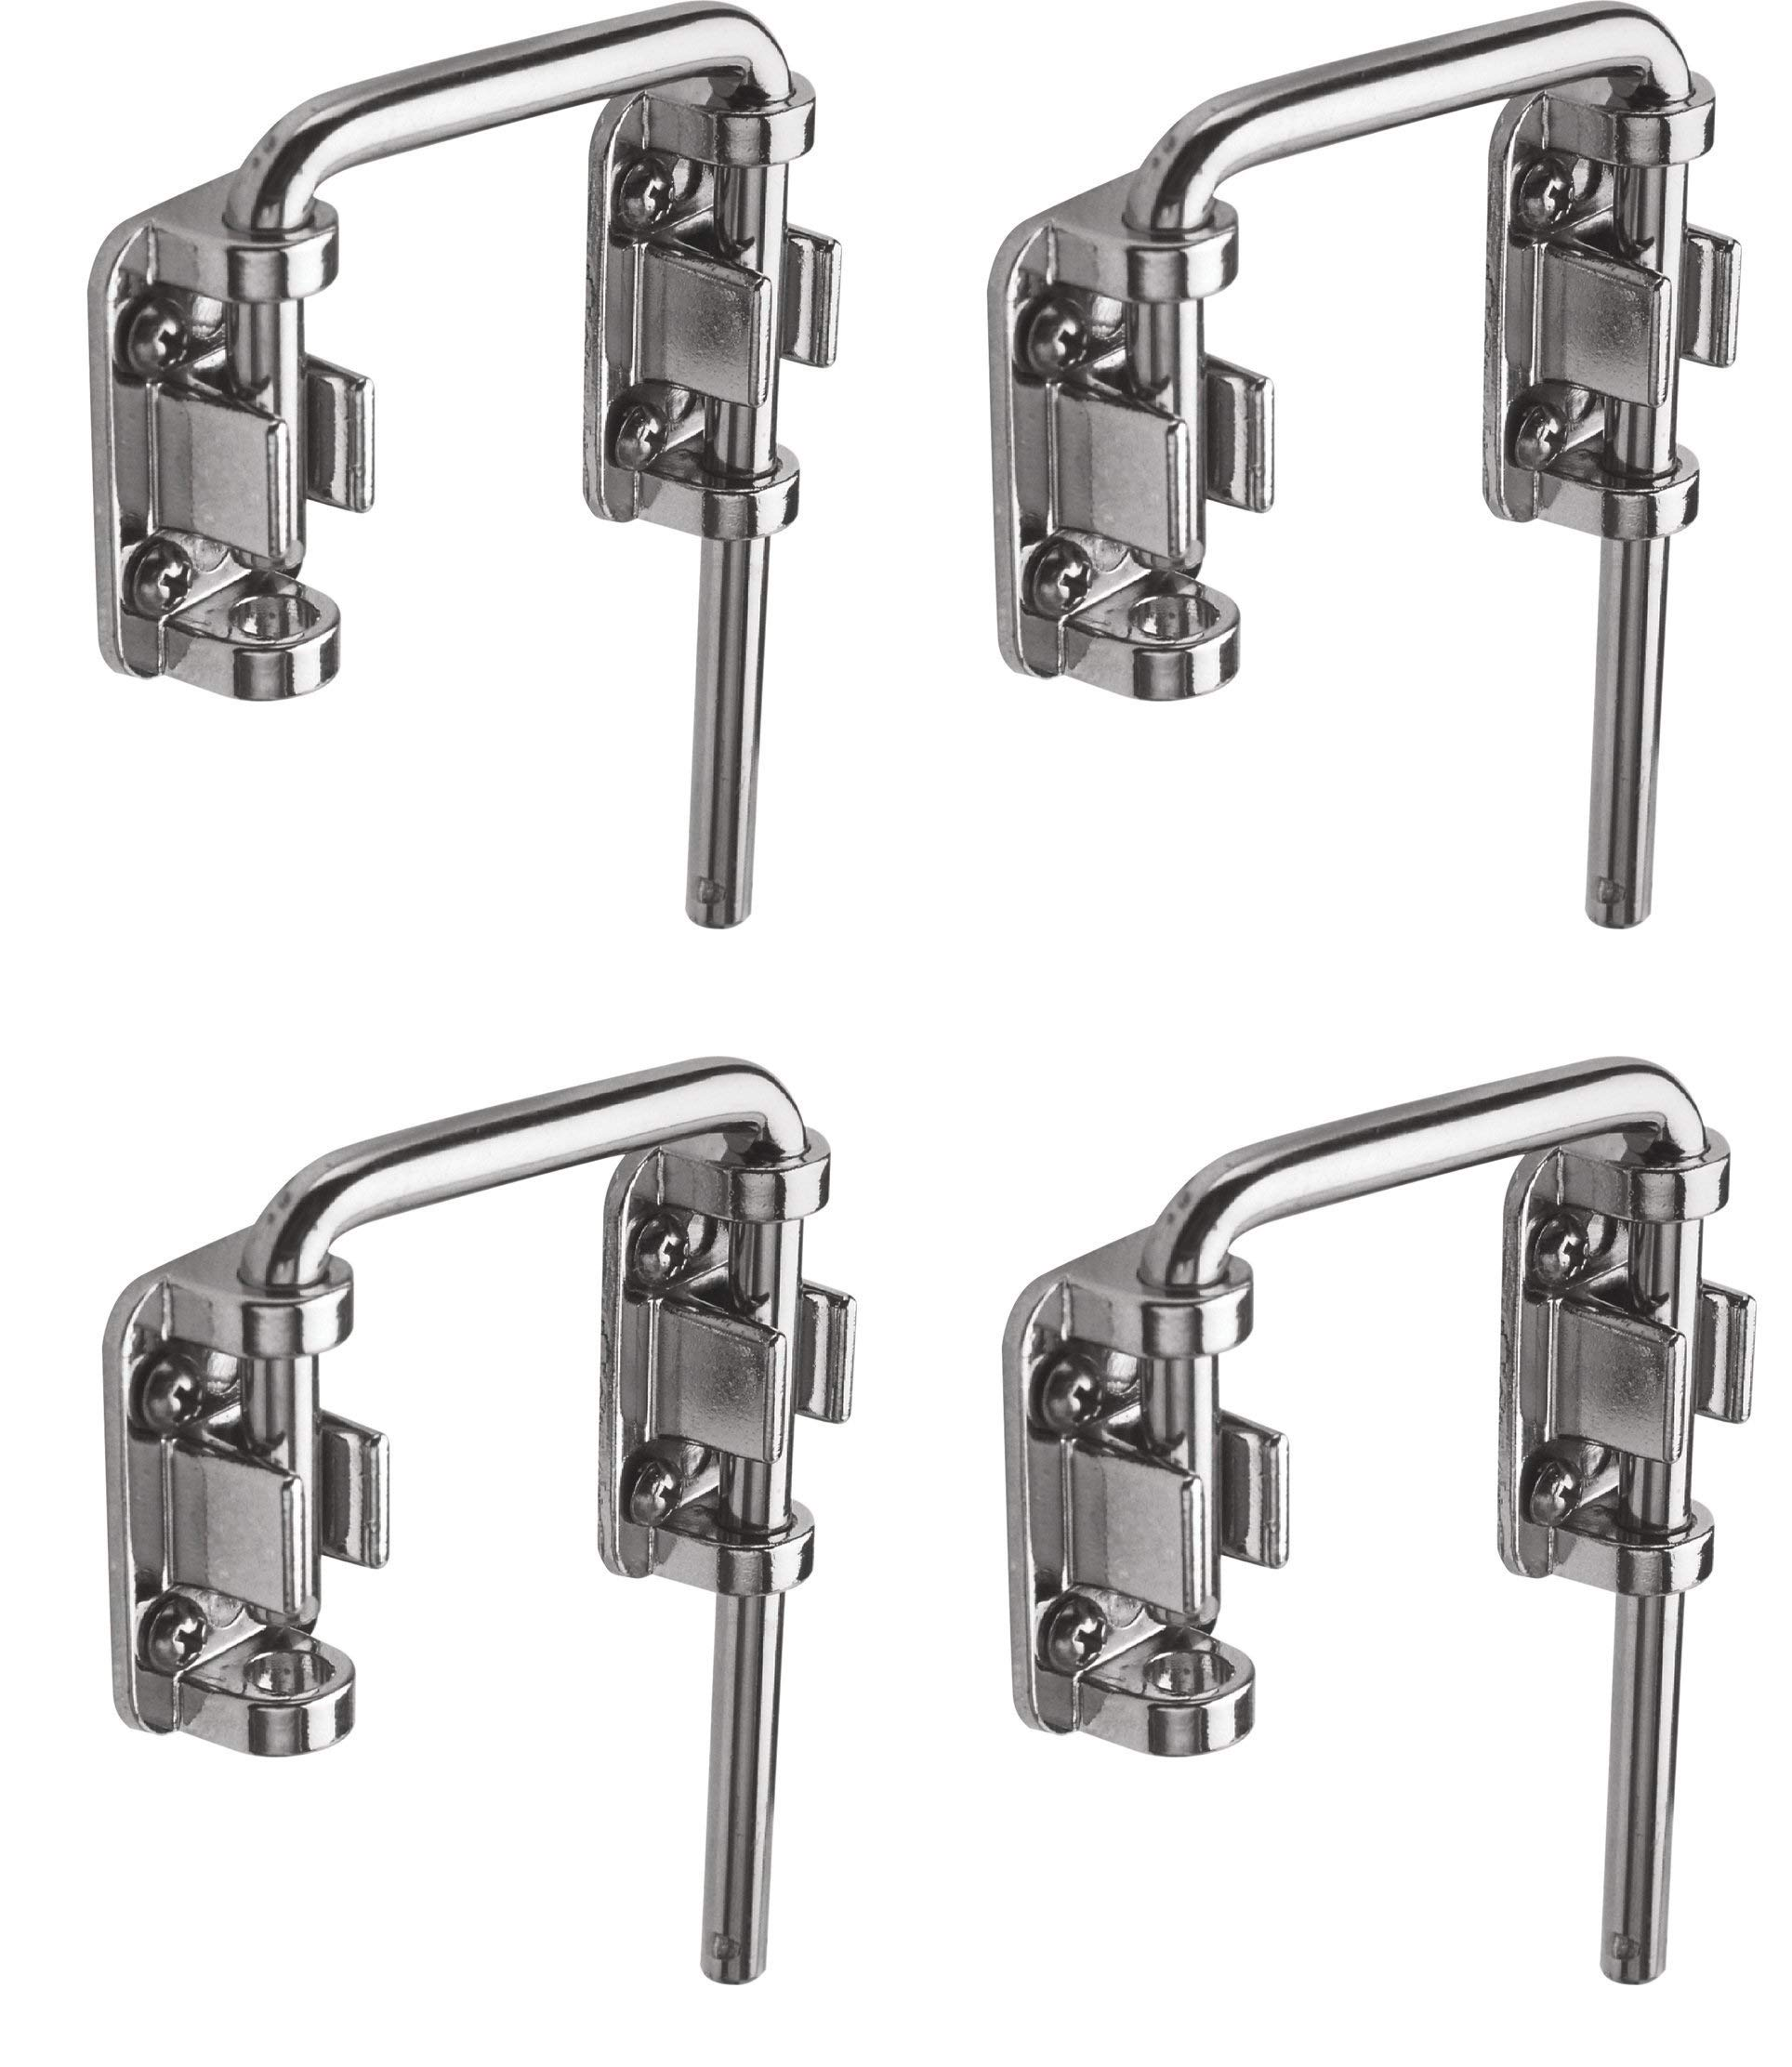 """Defender Security U 9847 Patio Sliding Door Loop Lock – Increase Home Security, Install Additional Child-Safe Security, 2-1/8"""" Hardened Steel Bar with Diecast Base, Chrome Plated (4-(Pack))"""